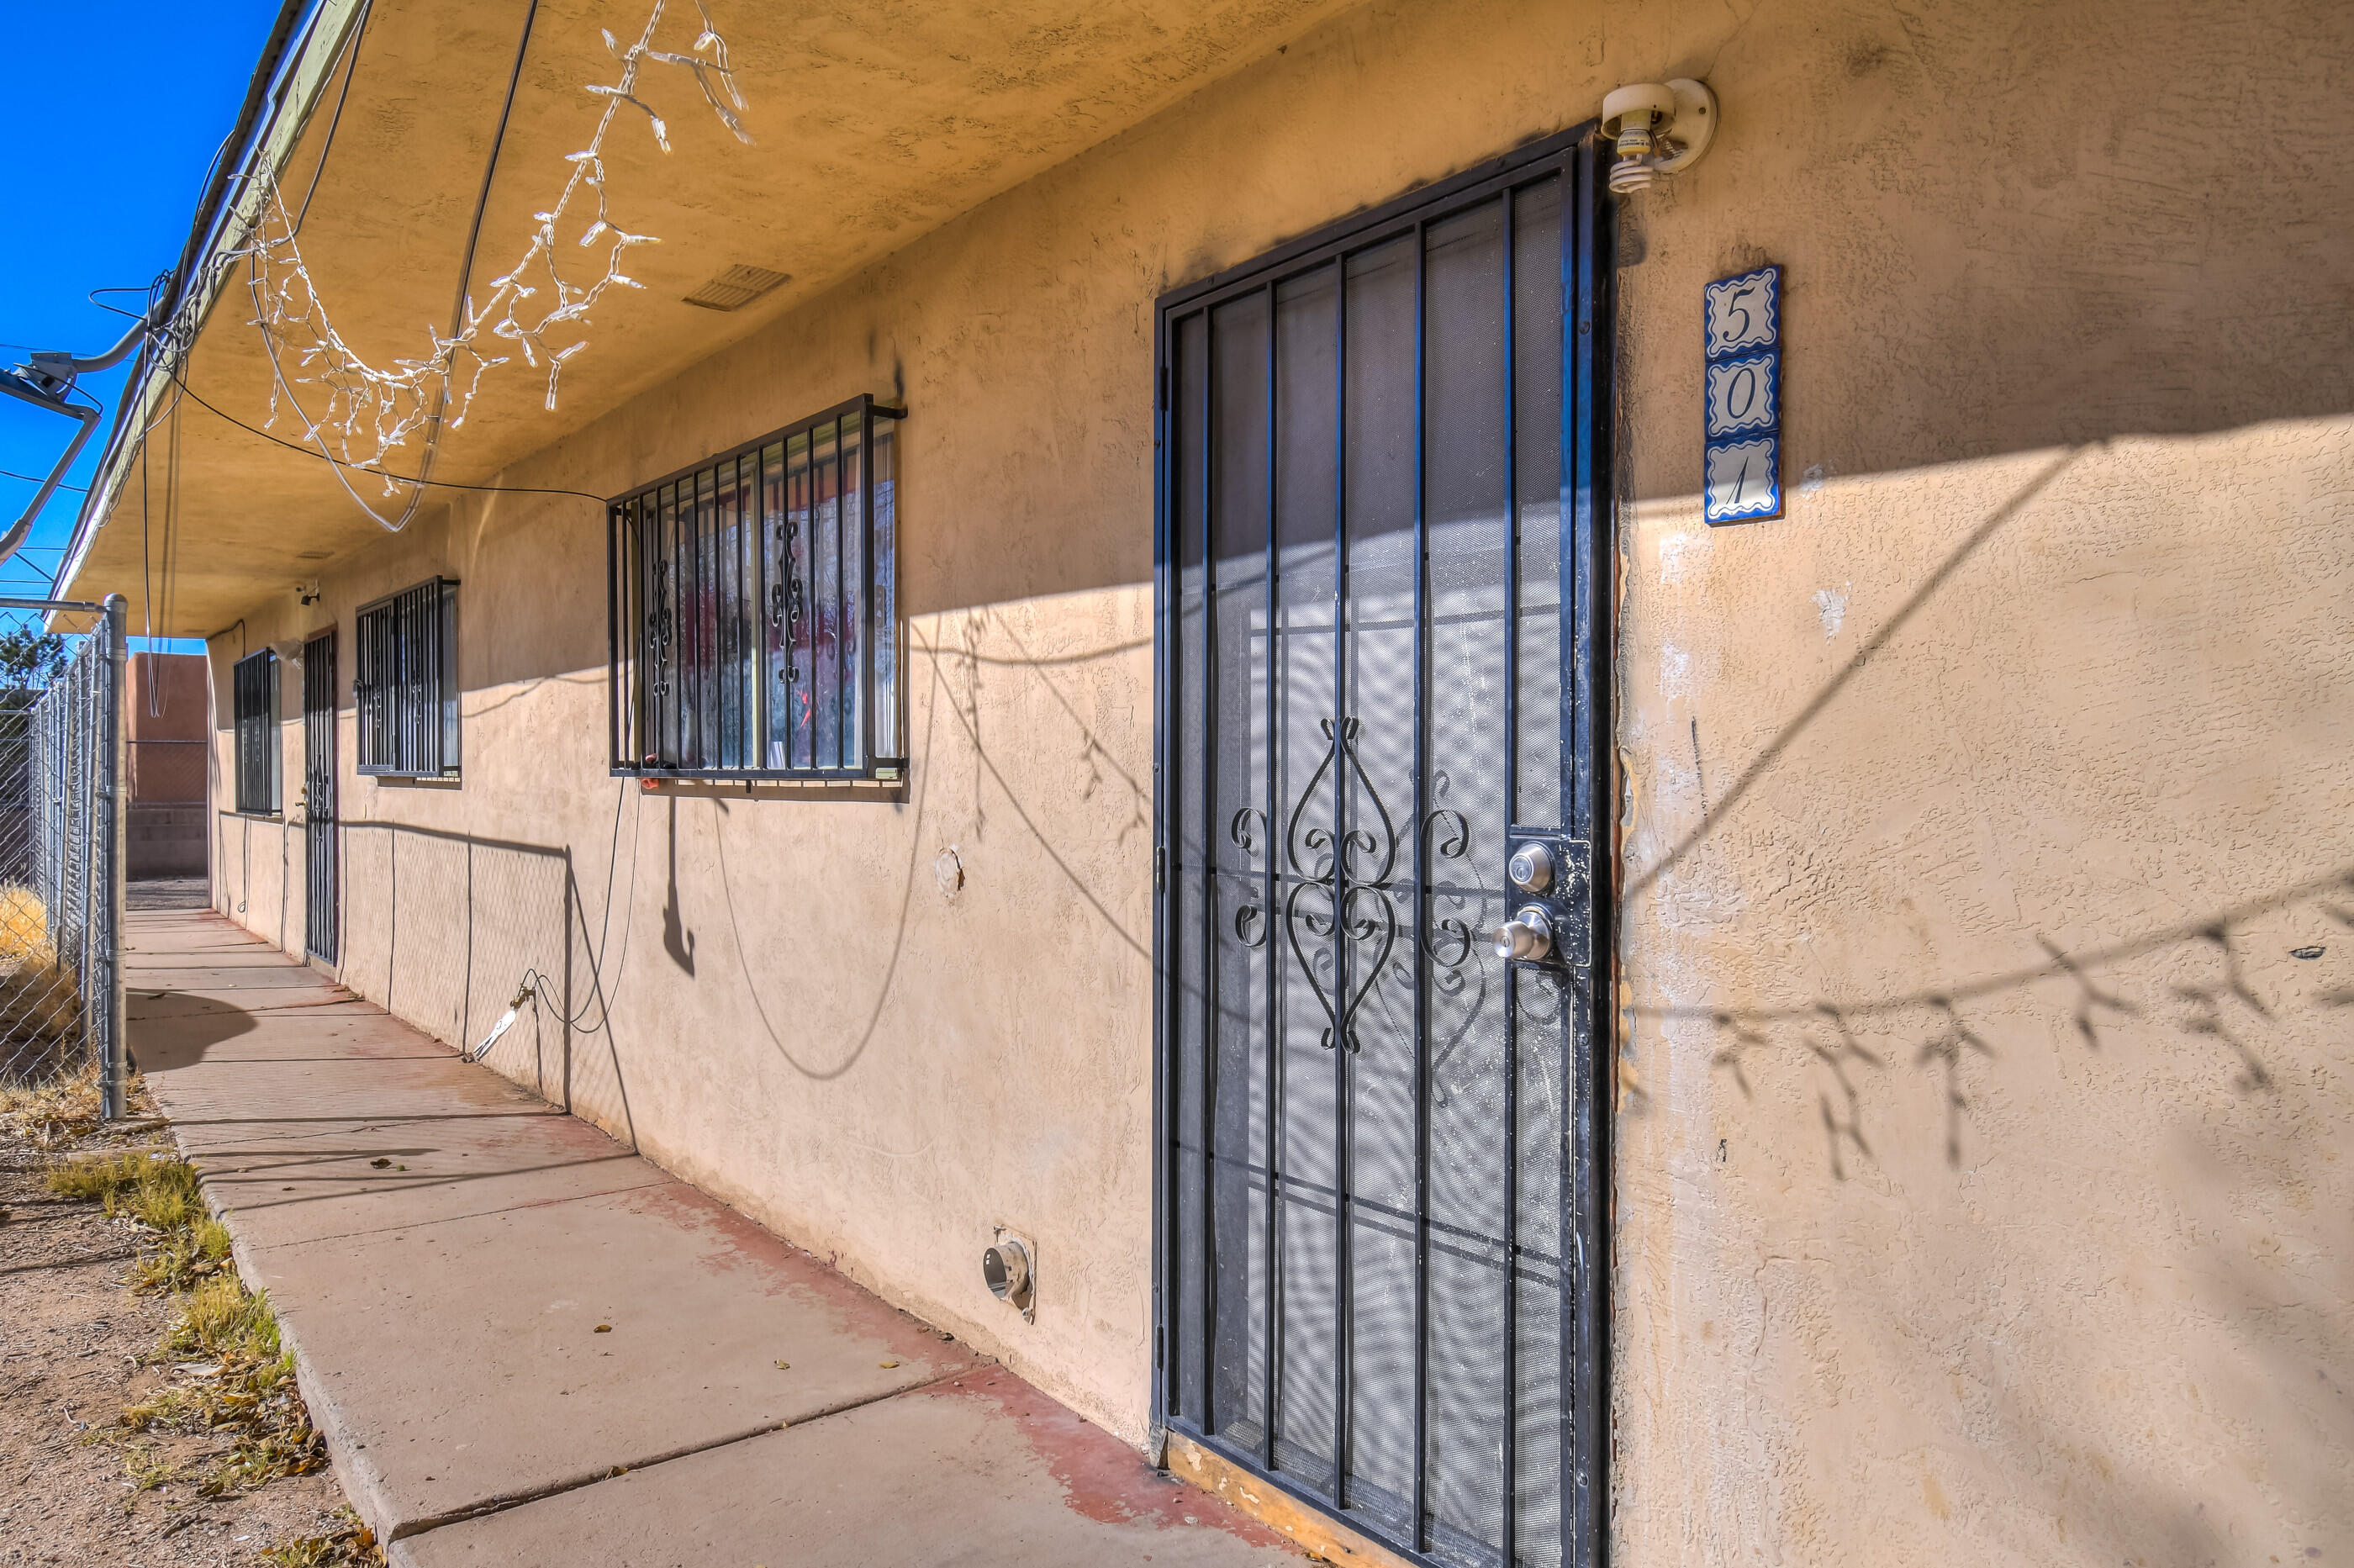 BRING ALL OFFERS for this Cozy Little Charmer!! Great Investment Opportunity or OWN for less than you can rent! 2 bedrooms and 1 full bathroom condo. NEW Cooler, Ample off-street parking! Extra Storage, Private Fenced Back Yard. 501 IS THE EAST UNIT ONLY. DO NOT DISTURB TENANTS. CALL for TOUR!